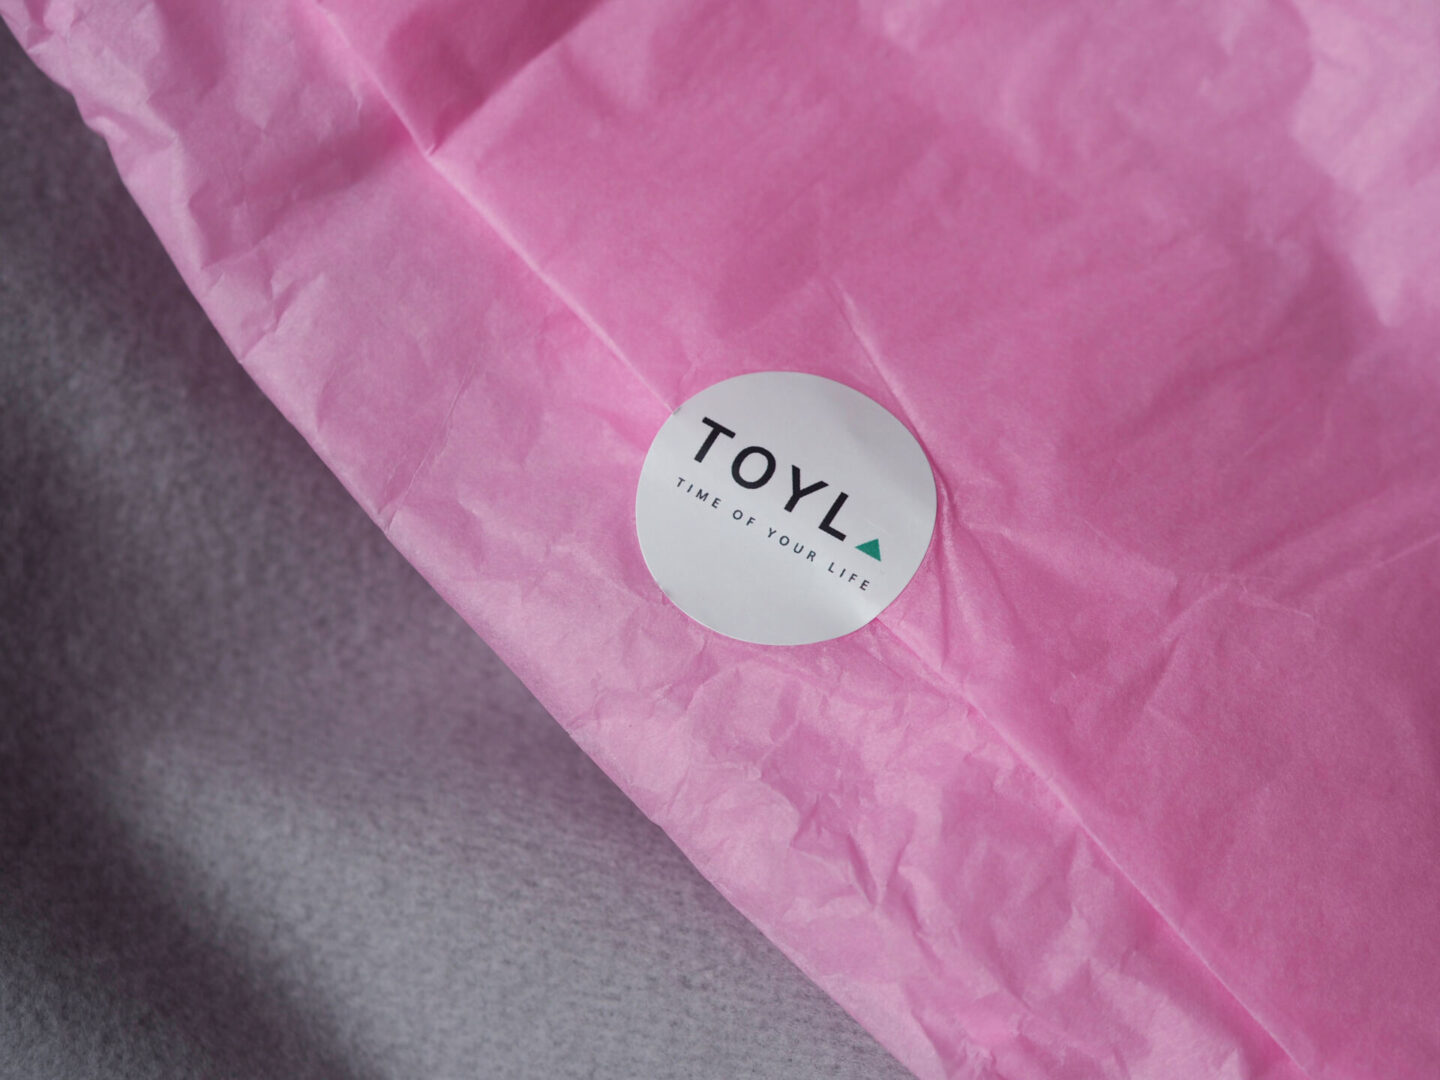 Time of your life TOYL beauty subscription box